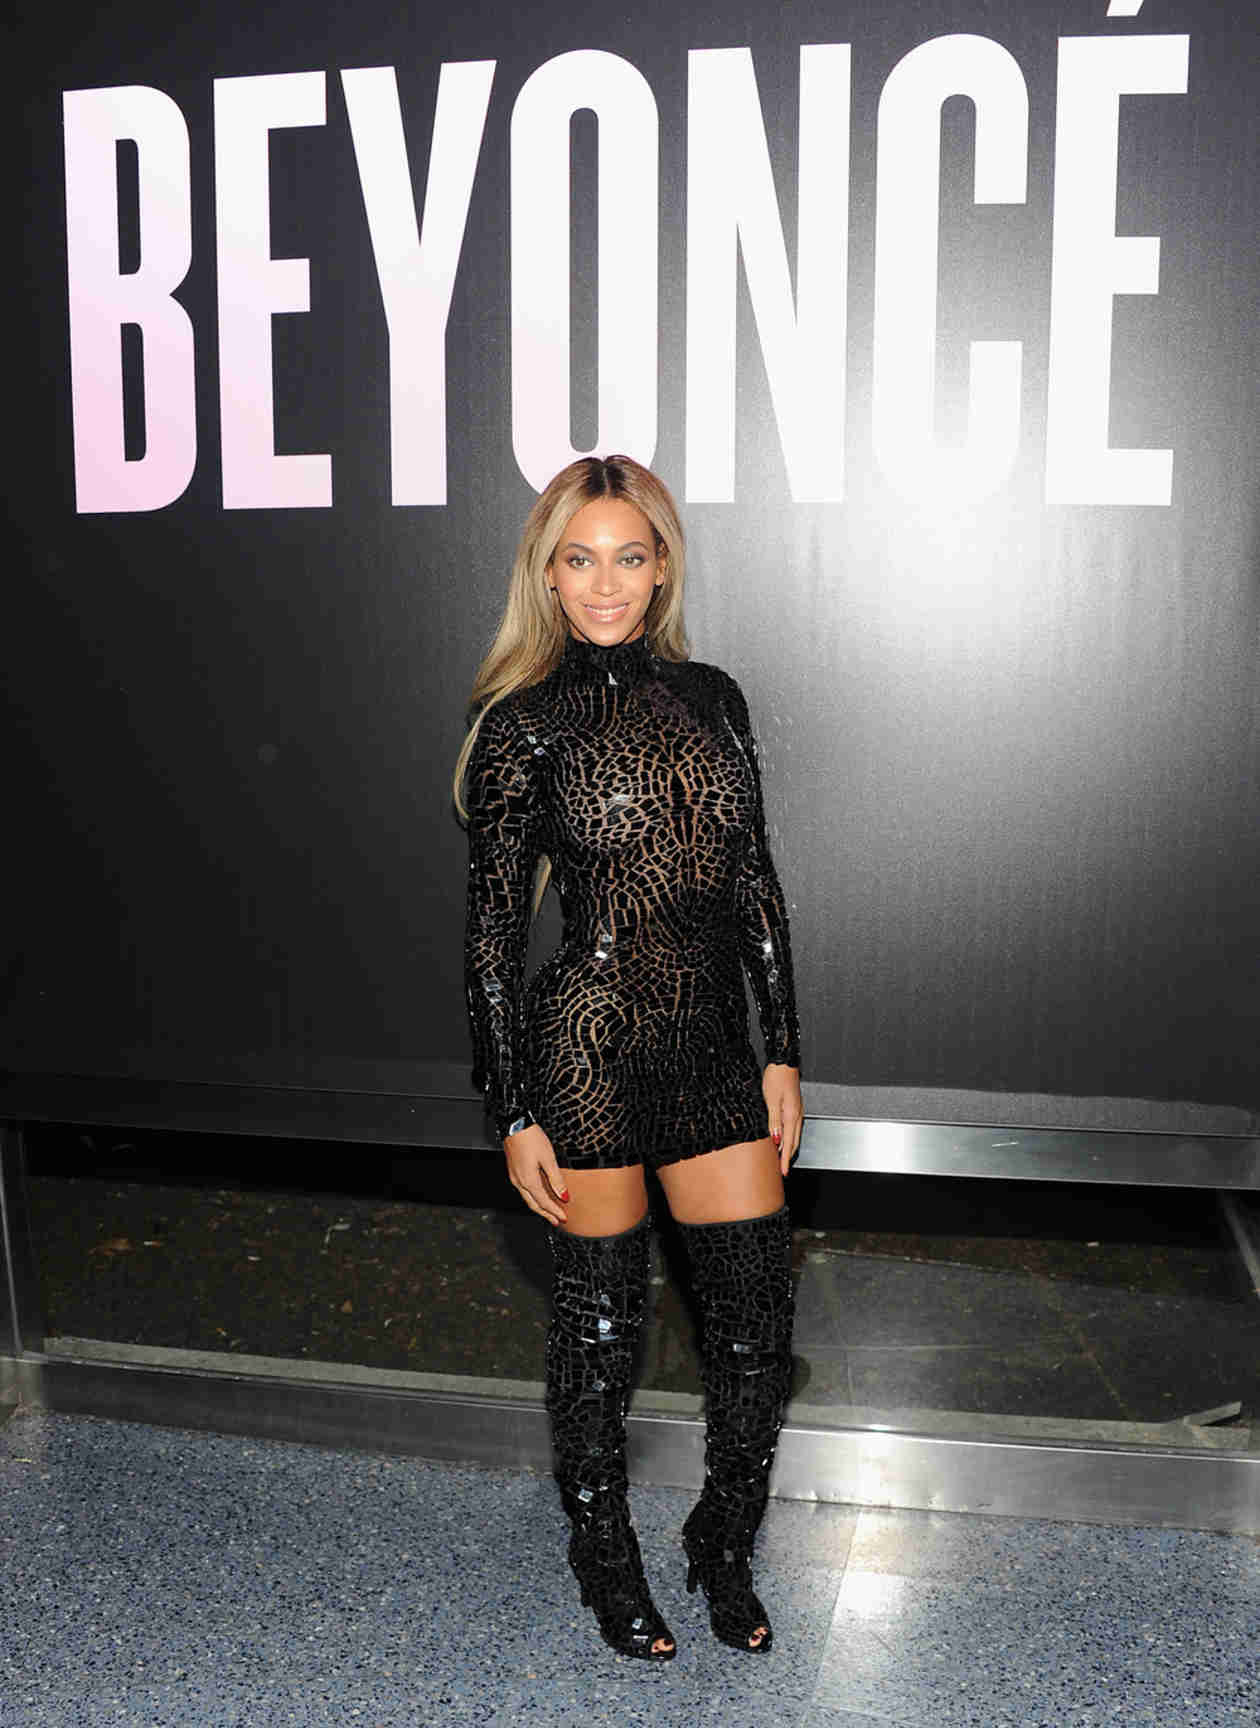 "Beyonce's Sexy Image Dissed by THIS Actress: Bey Needs to ""Take Responsibility"" and Stop ""Grinding"""